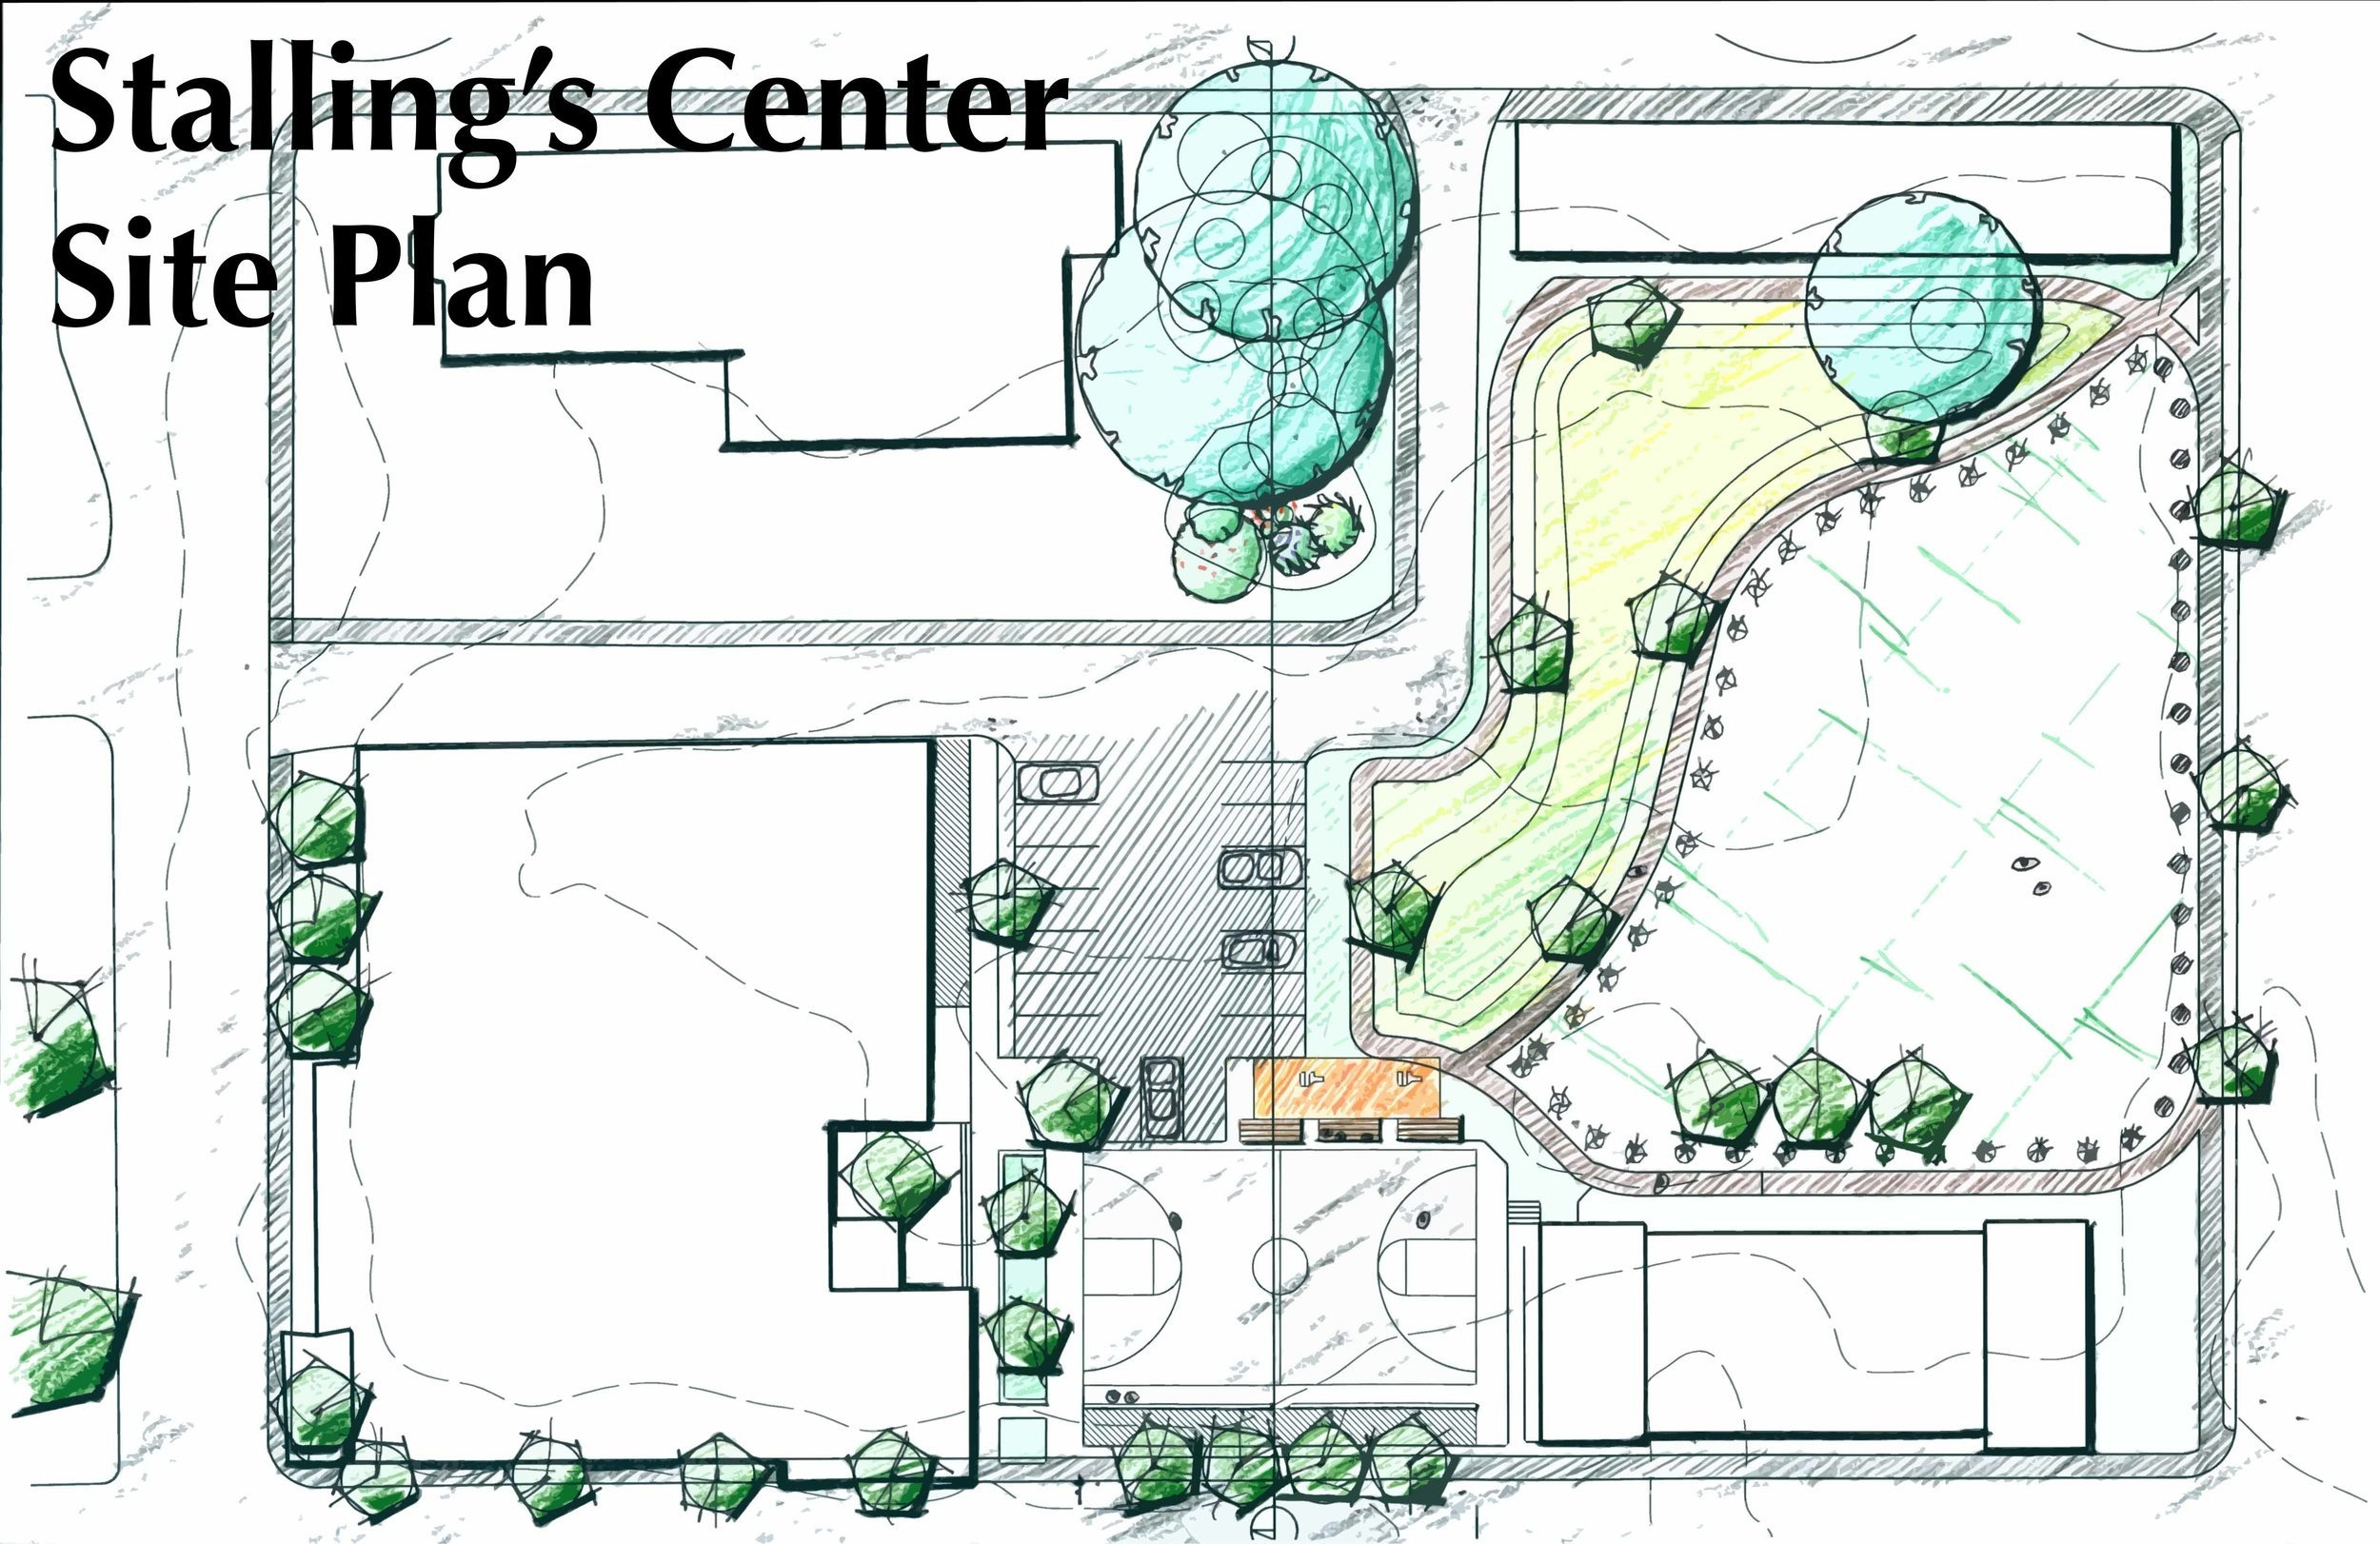 Stallings Center - Site Plan